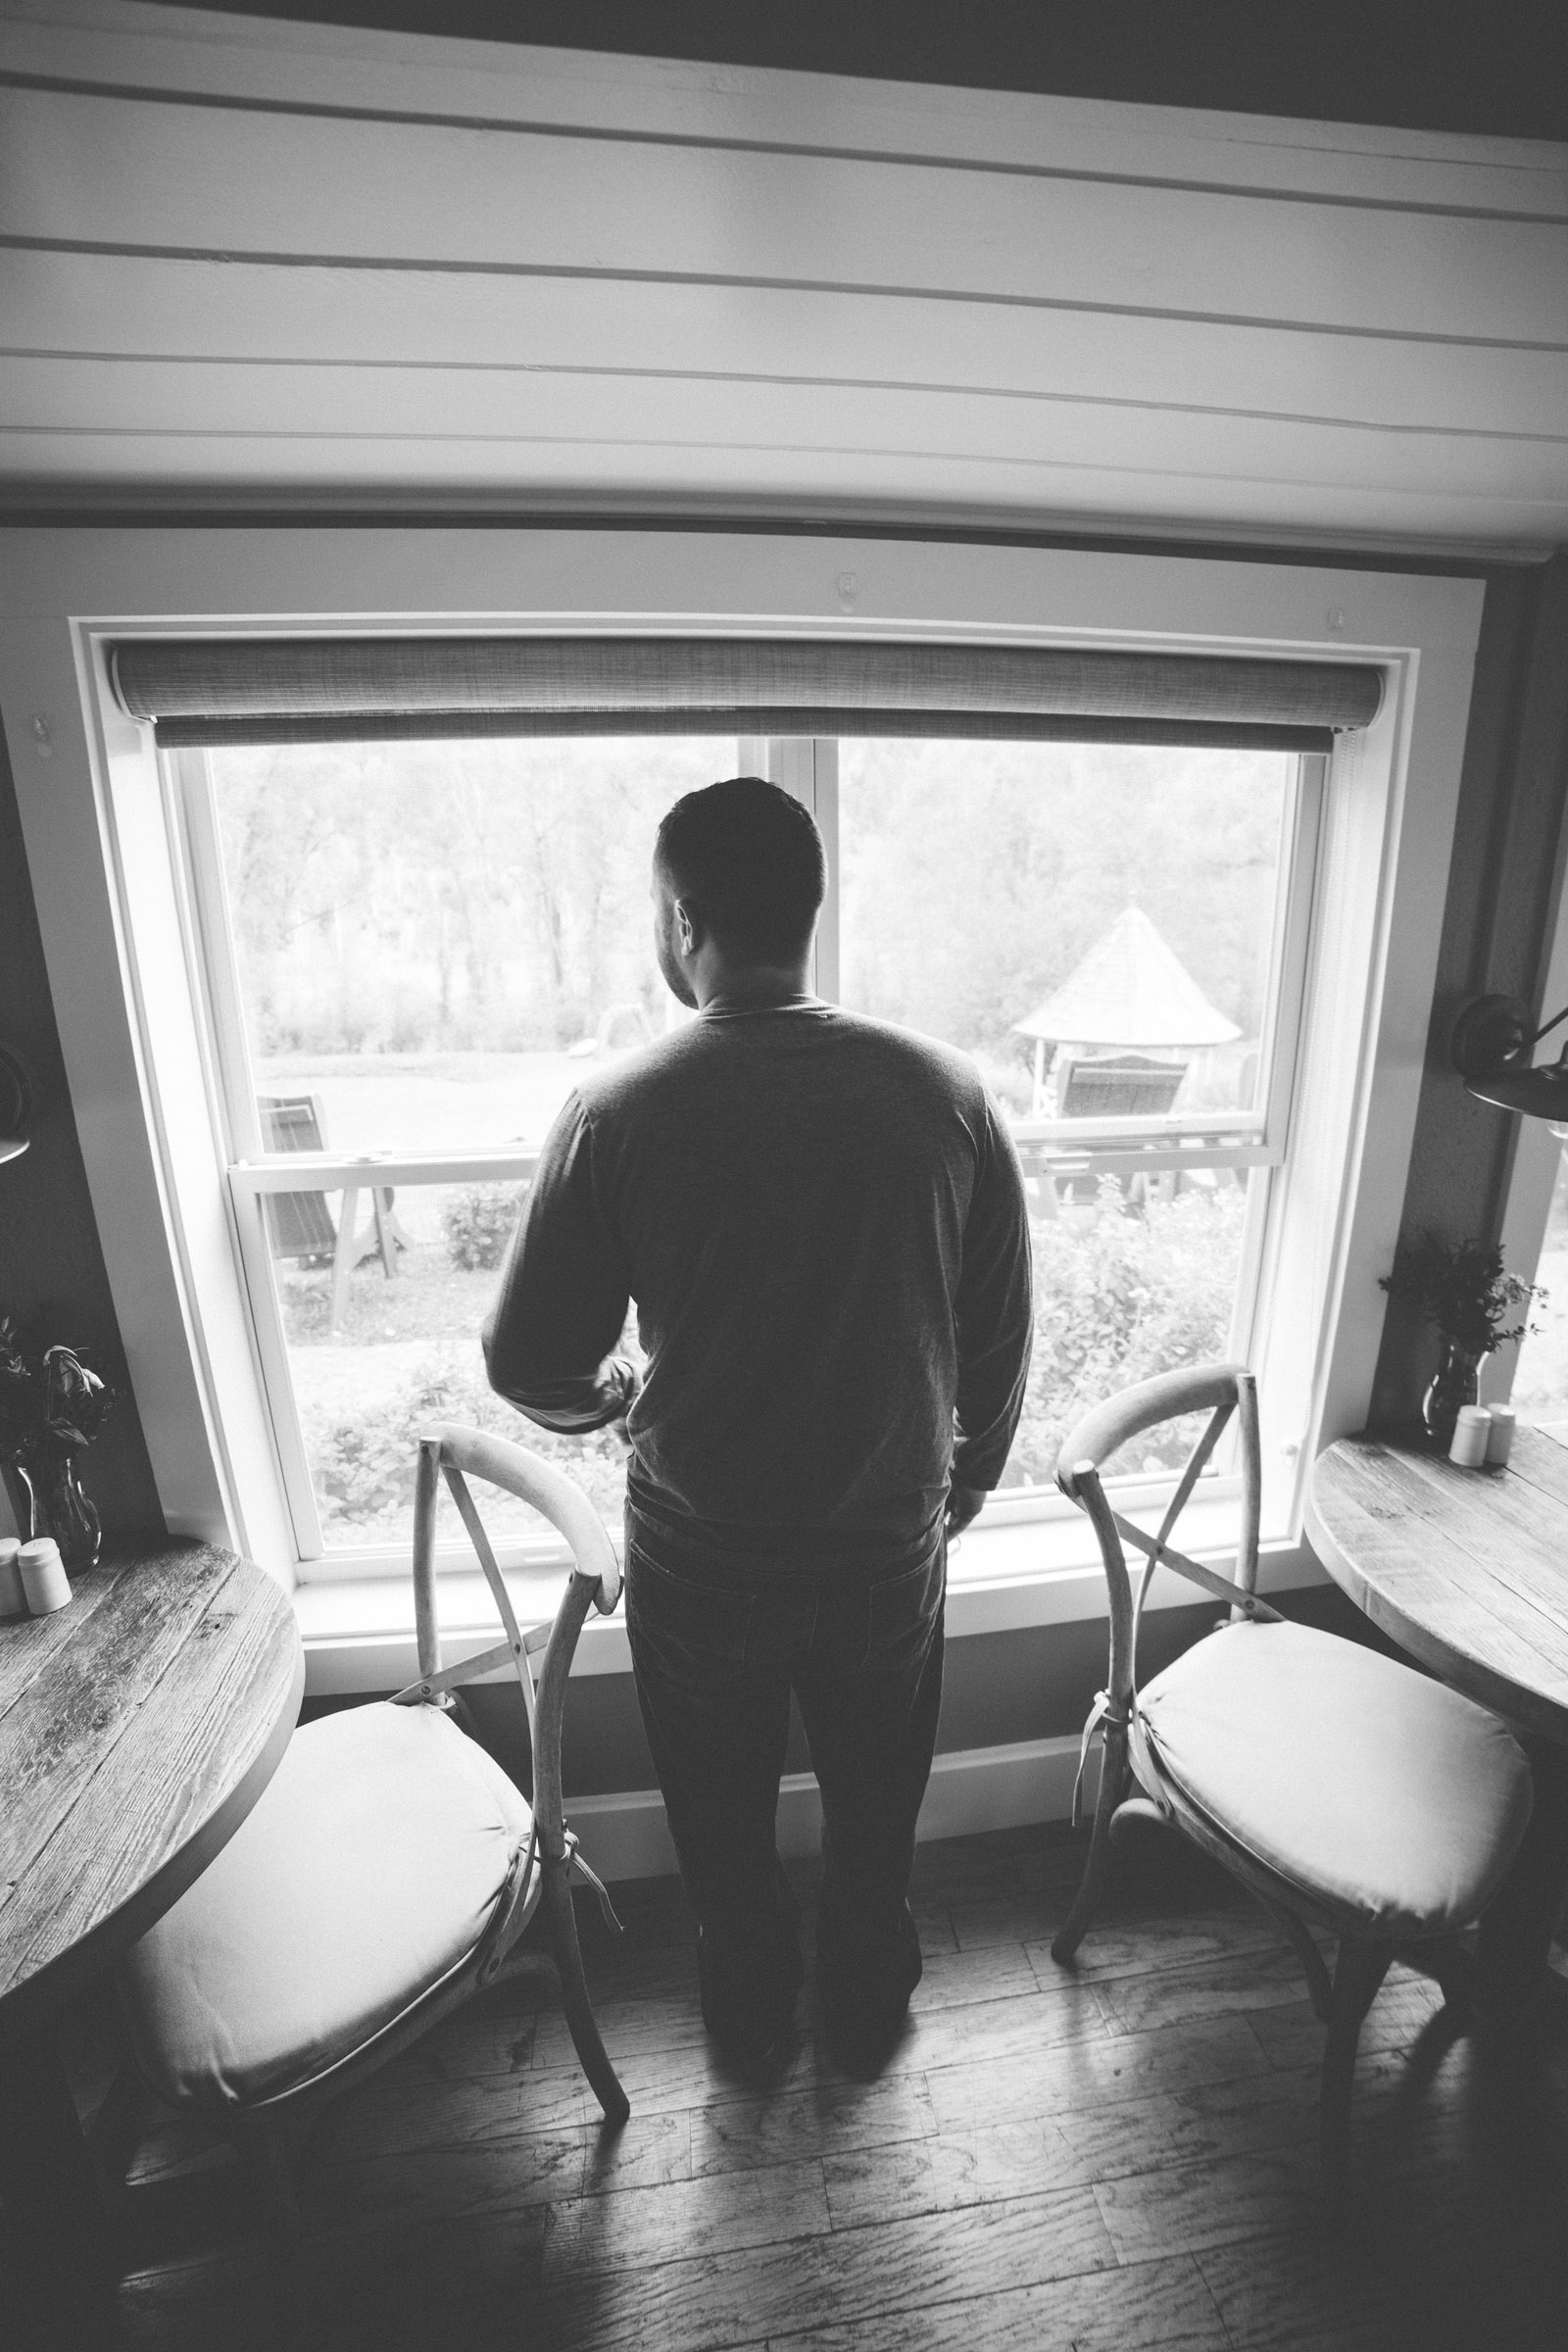 groom looking out window before ceremony in black and white image